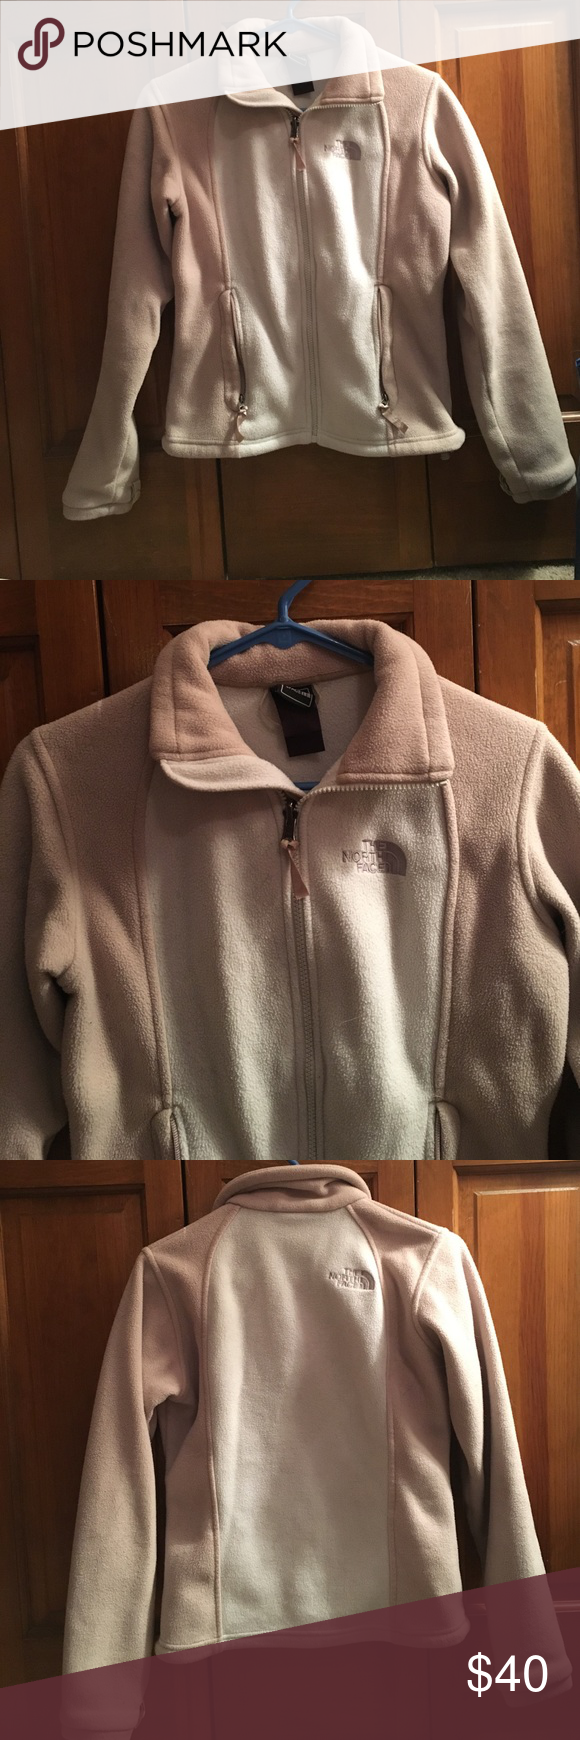 North Face Jacket Cream and tan North Face zip up jacket. Two front pockets. Slight wear. Size XS. North Face Jackets & Coats